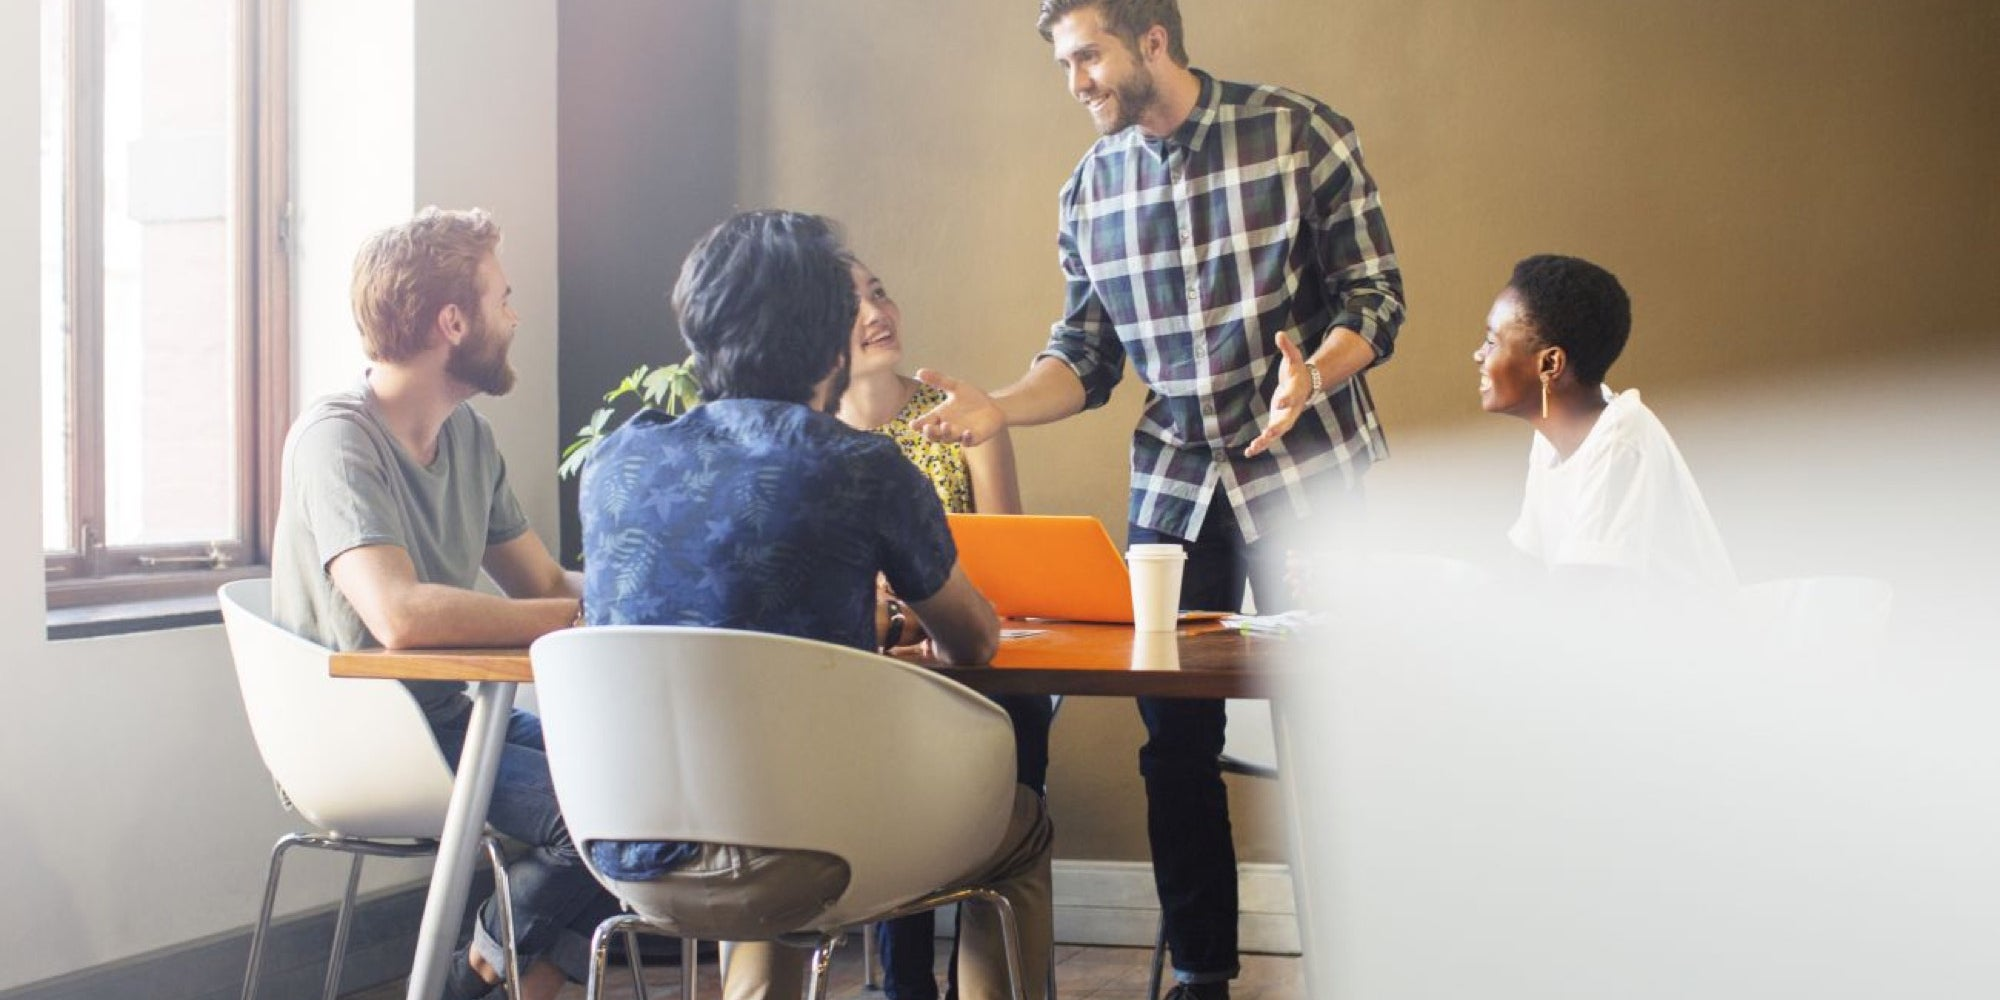 5 Ways to Quickly Boost Workplace Morale During Tough Times